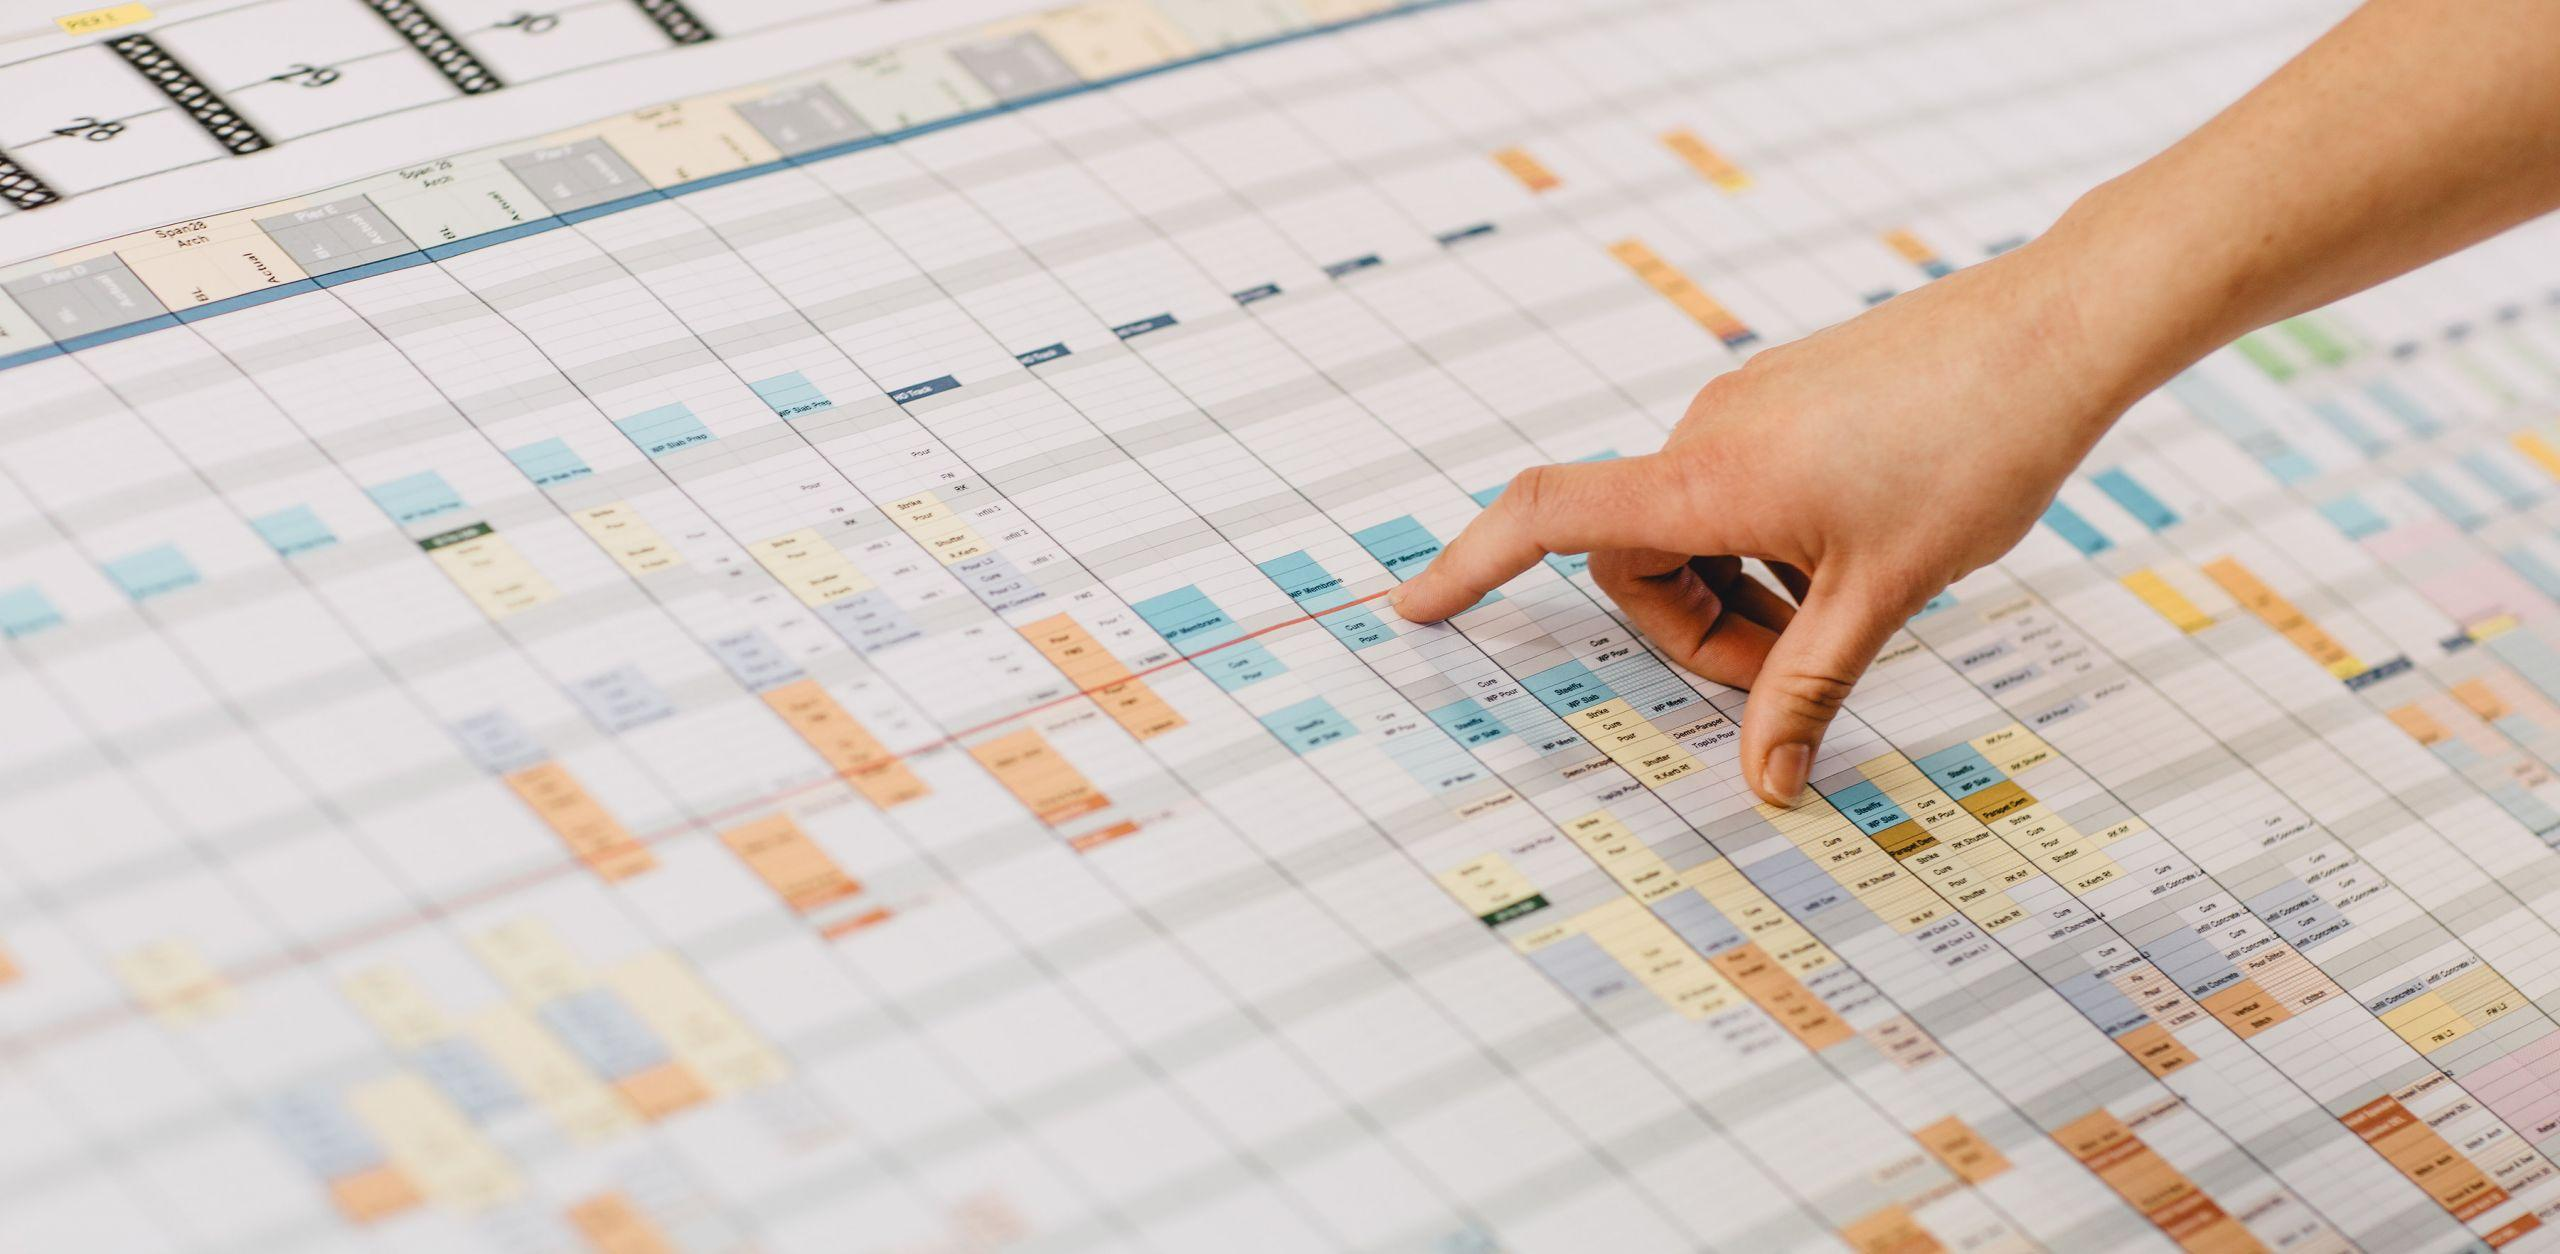 planning and scheduling